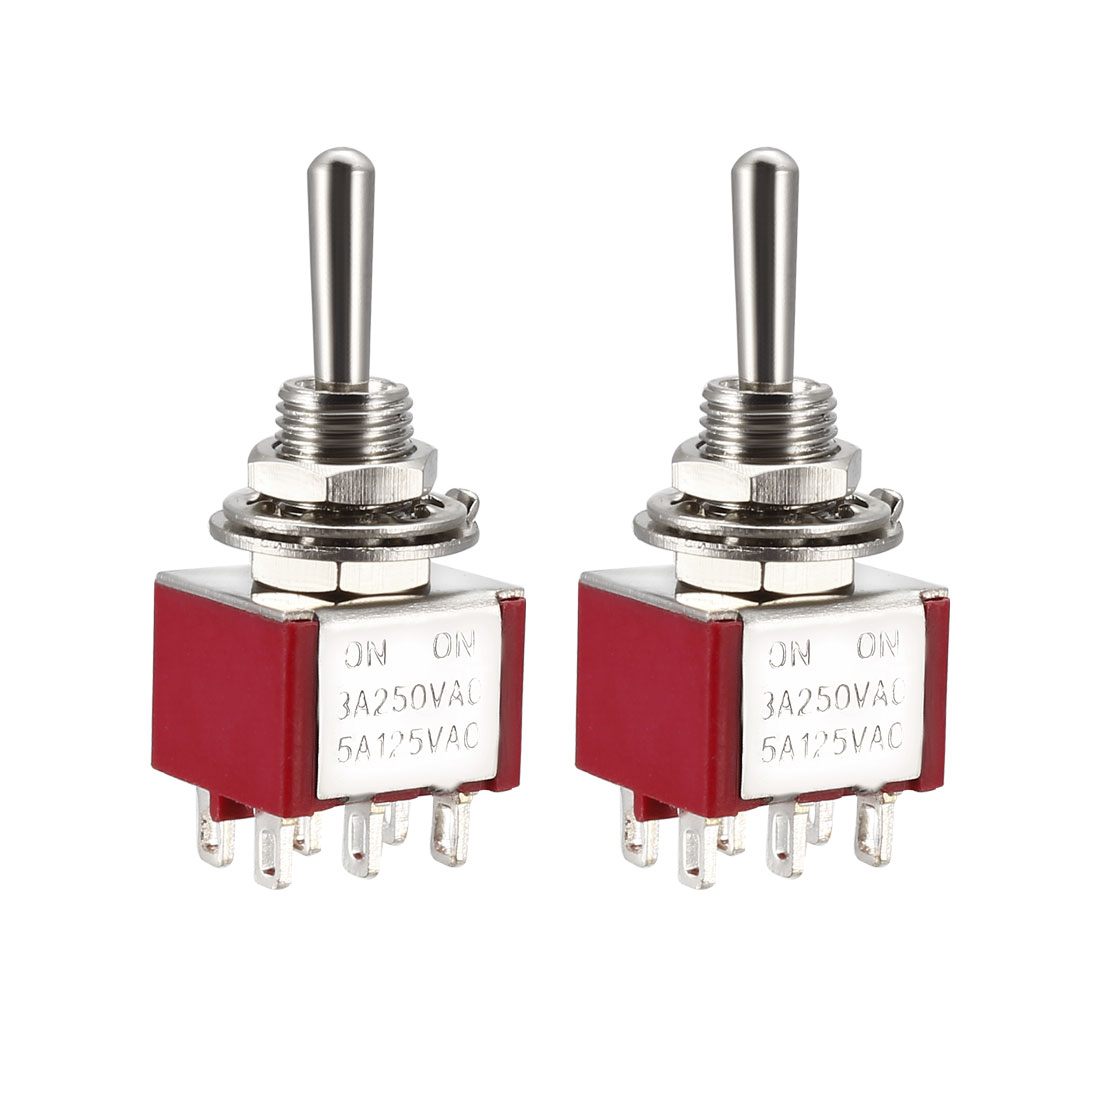 Guitar Latching Toggle Switch DPDT 2 Position 6 Pin ON ON Boat Switches Red 2pcs